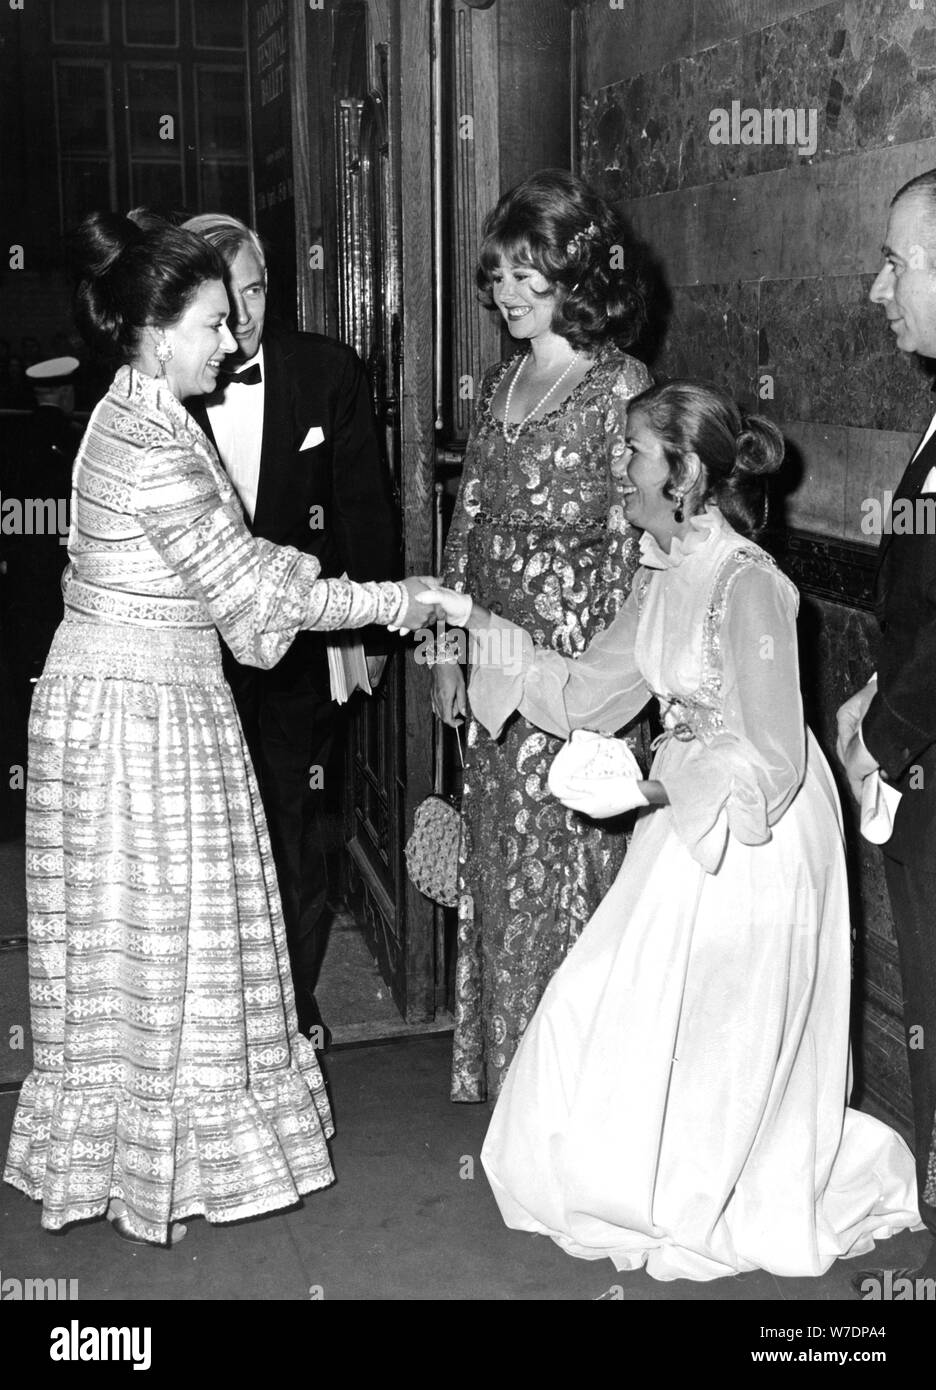 Princess Margaret with Vere Harmsworth and Harold Sebag-Montefiore at the Gala Ballet, 1971. Artist: Unknown Stock Photo